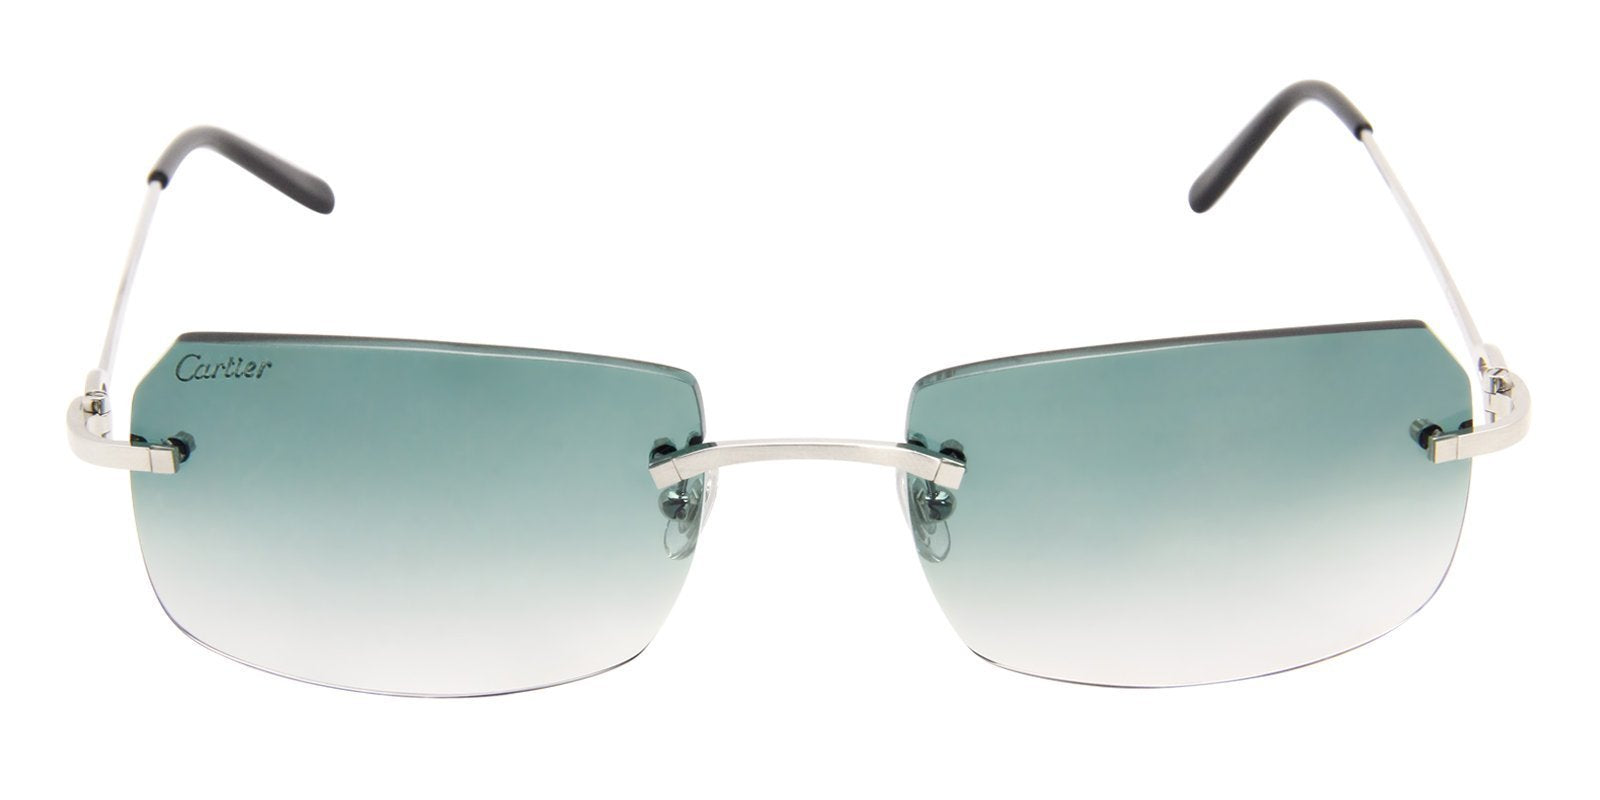 Cartier - C Decor Silver Rimless Women Sunglasses - 57mm-Sunglasses-Designer Eyes